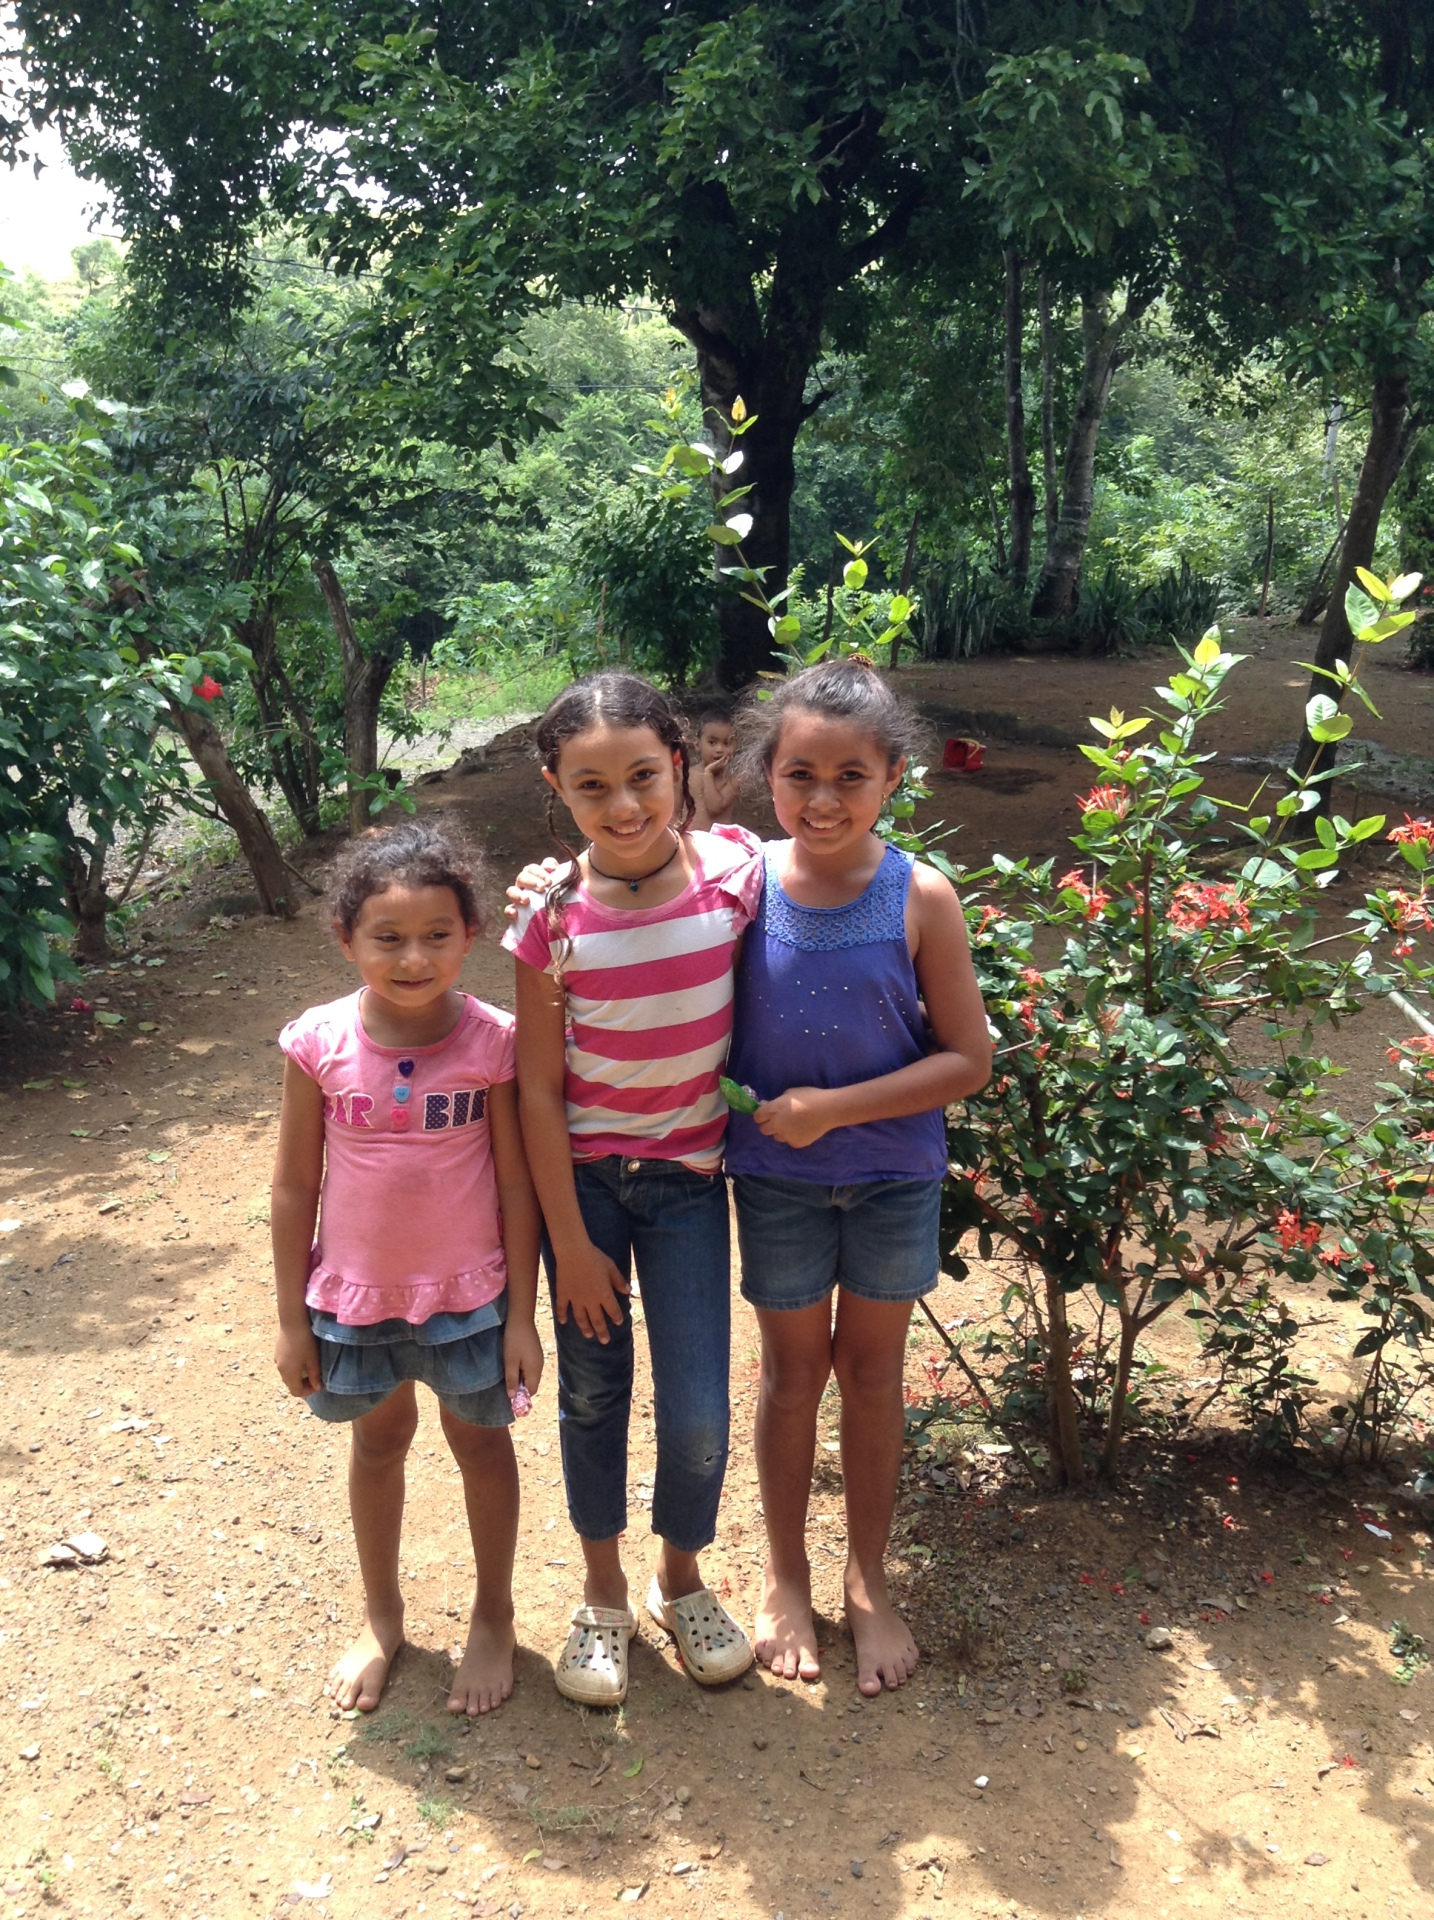 Some Of the Children